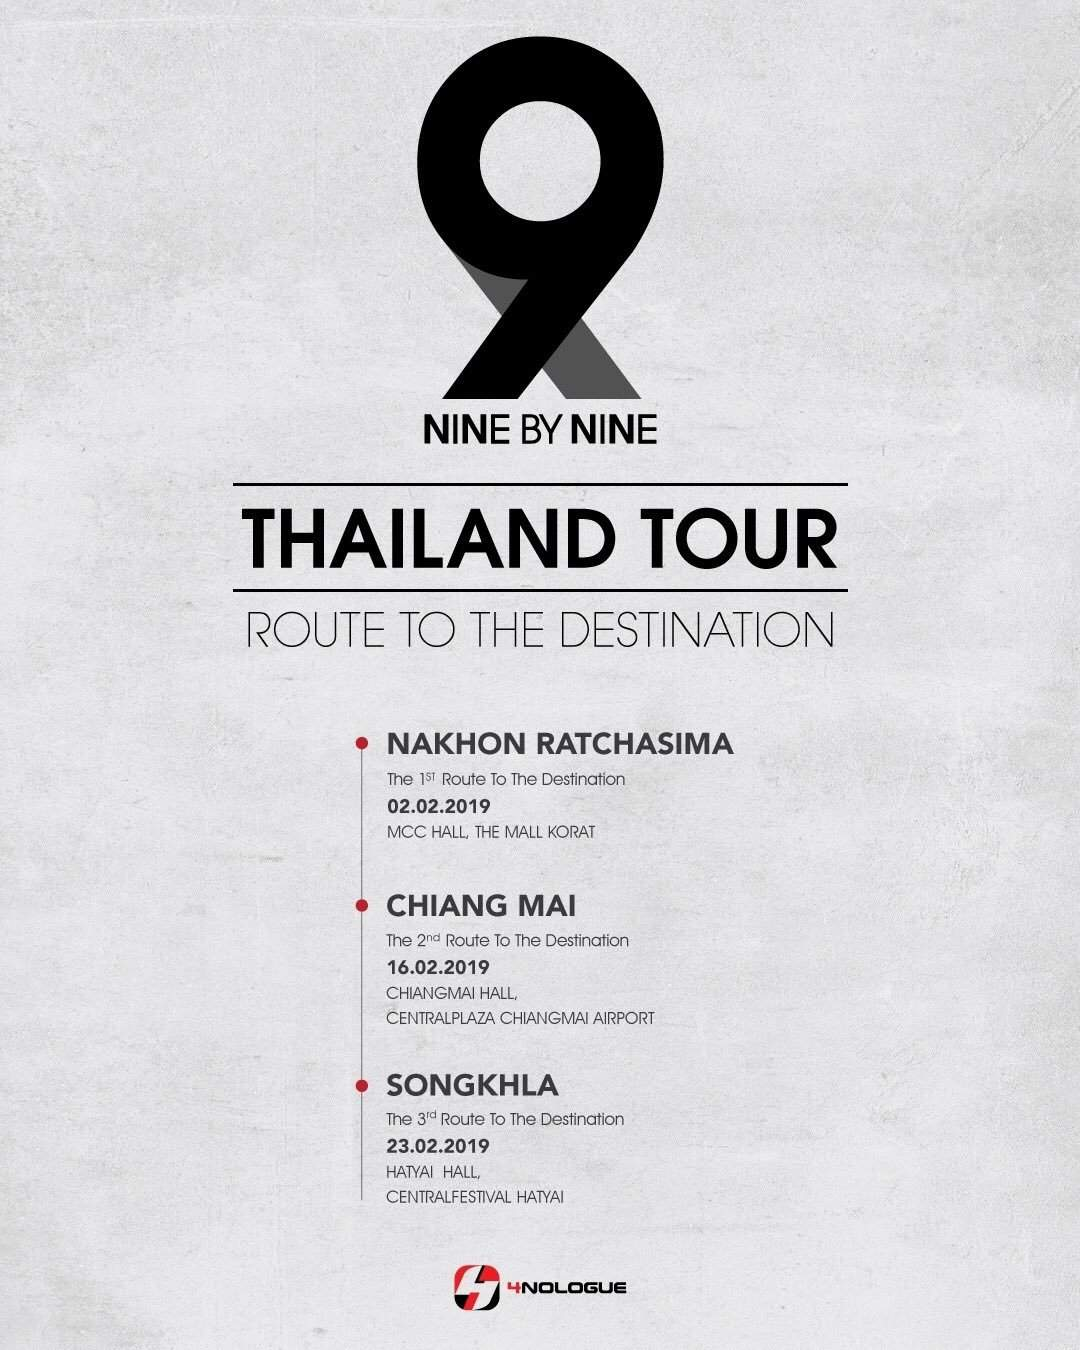 9x9 Thailand Tour : Route To The Destination   9by9th Amino